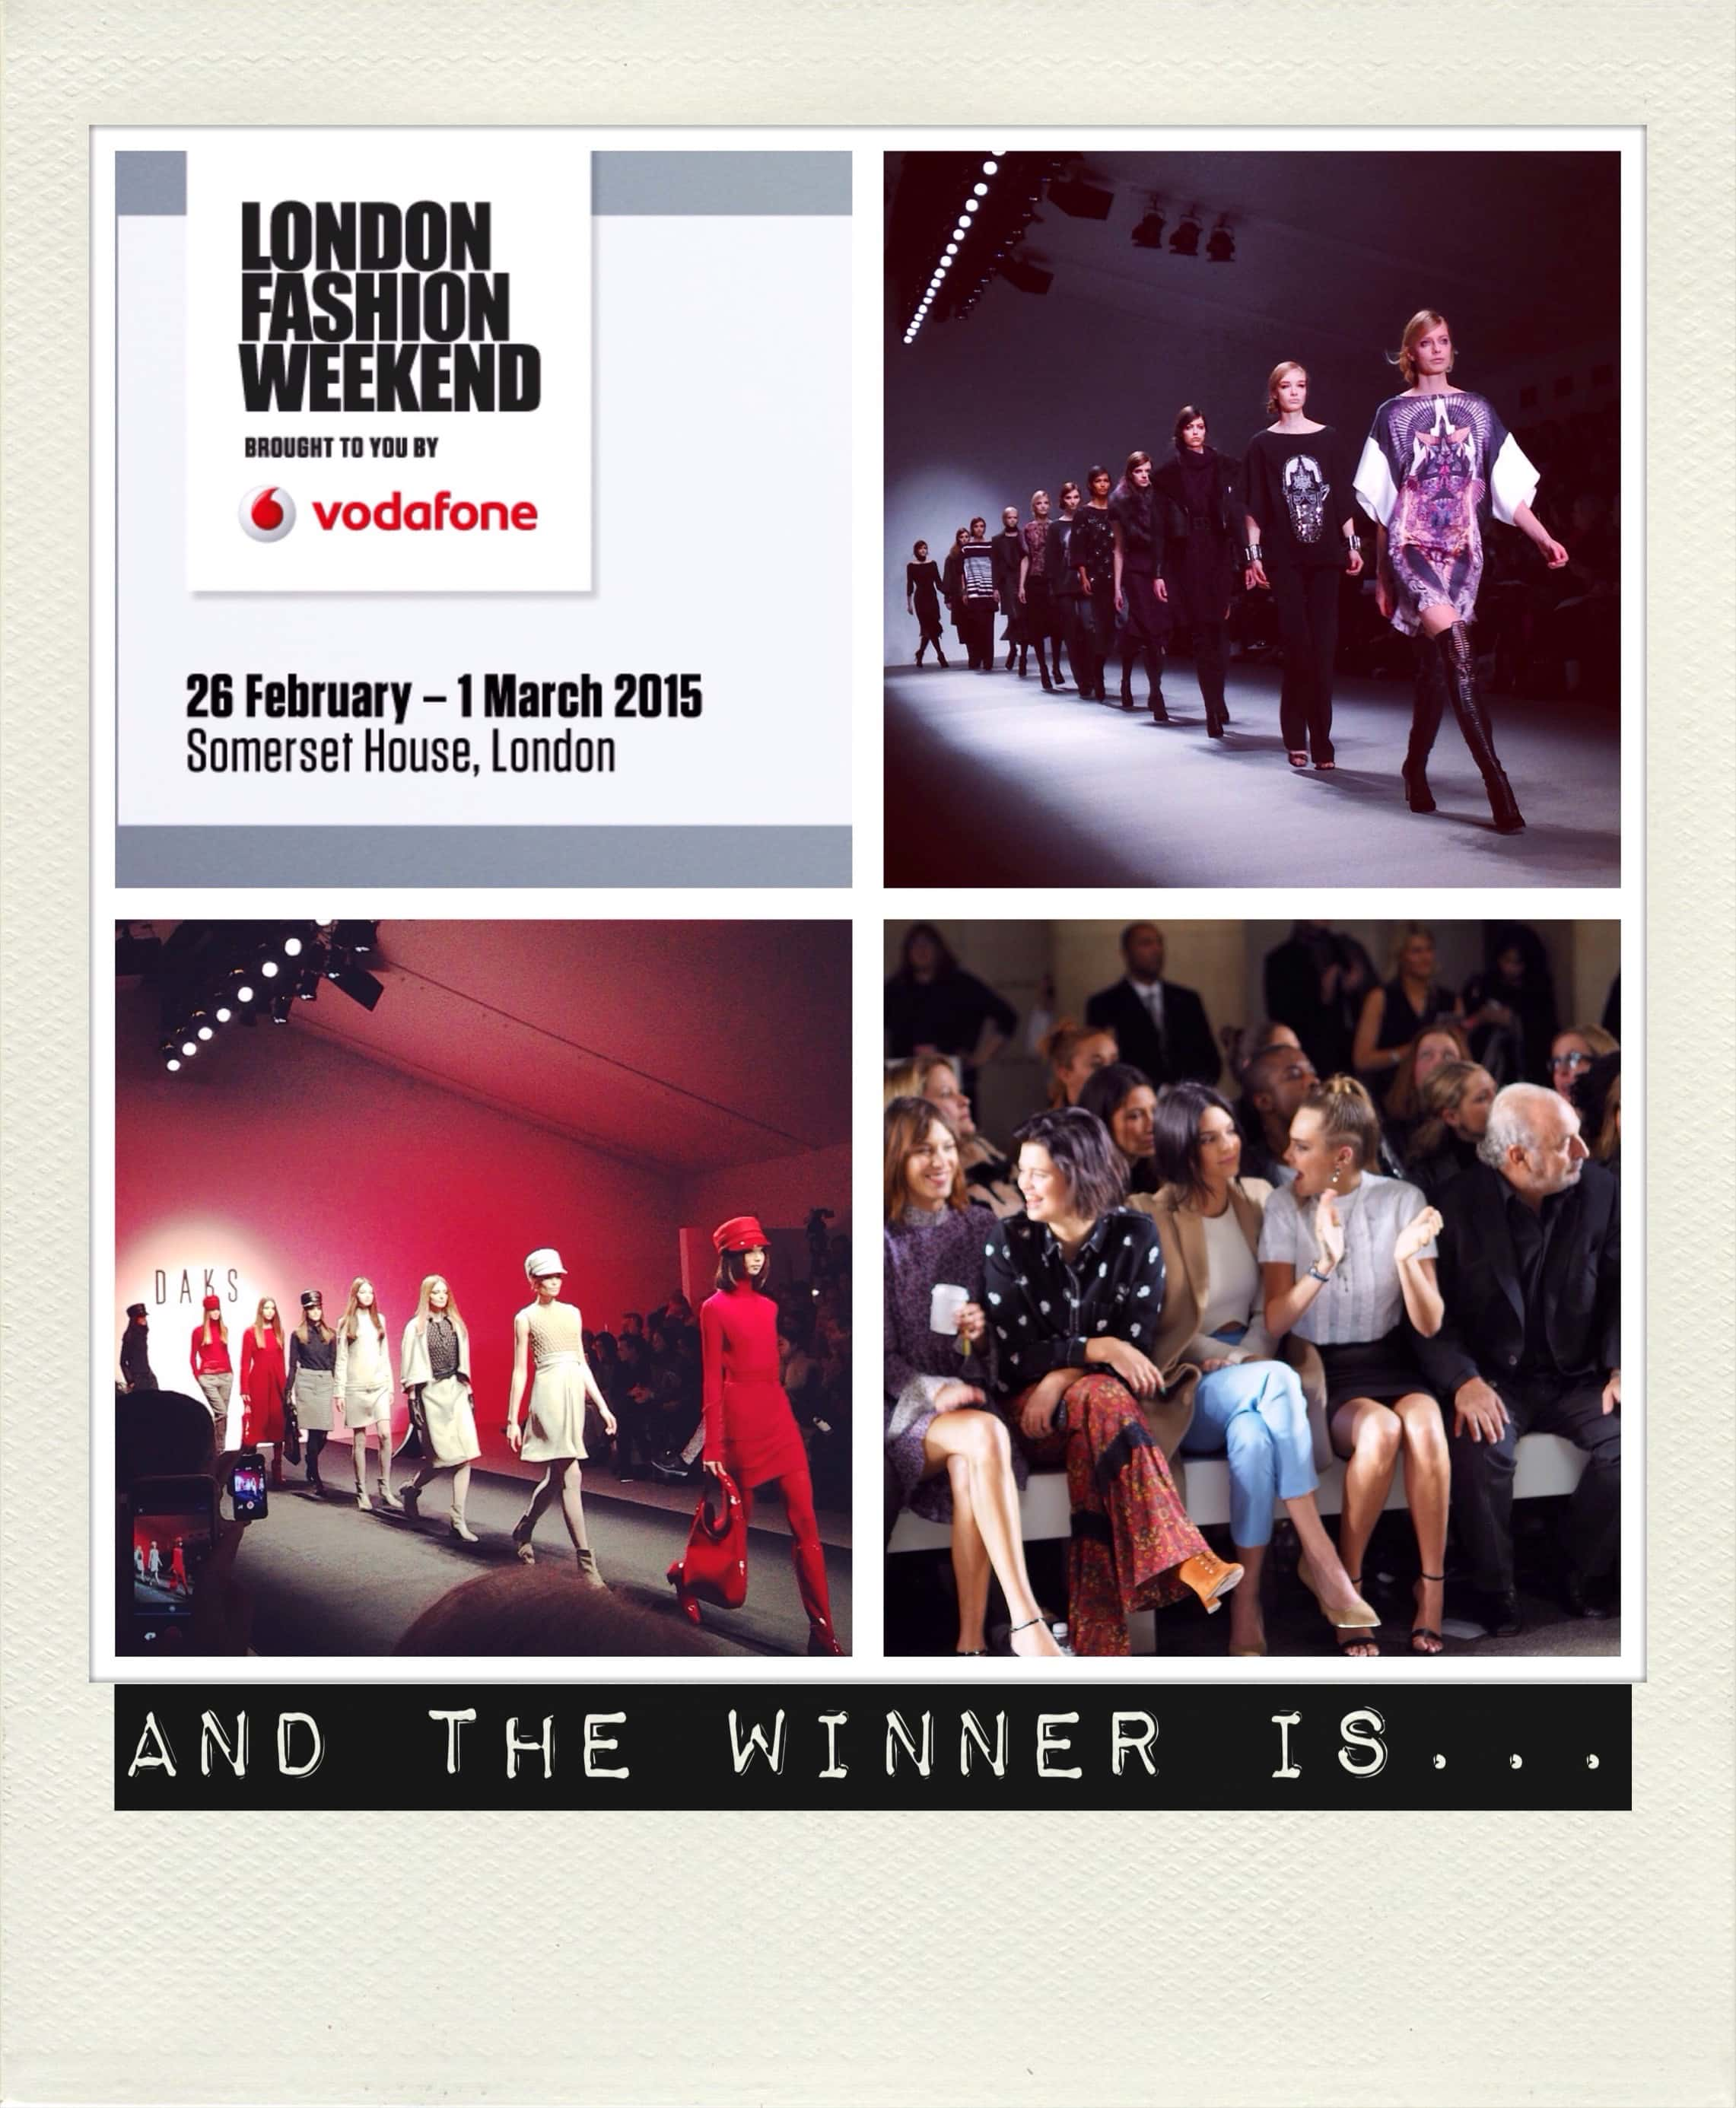 97fca73cd8d Vodafone london fashion weekend at somerset house